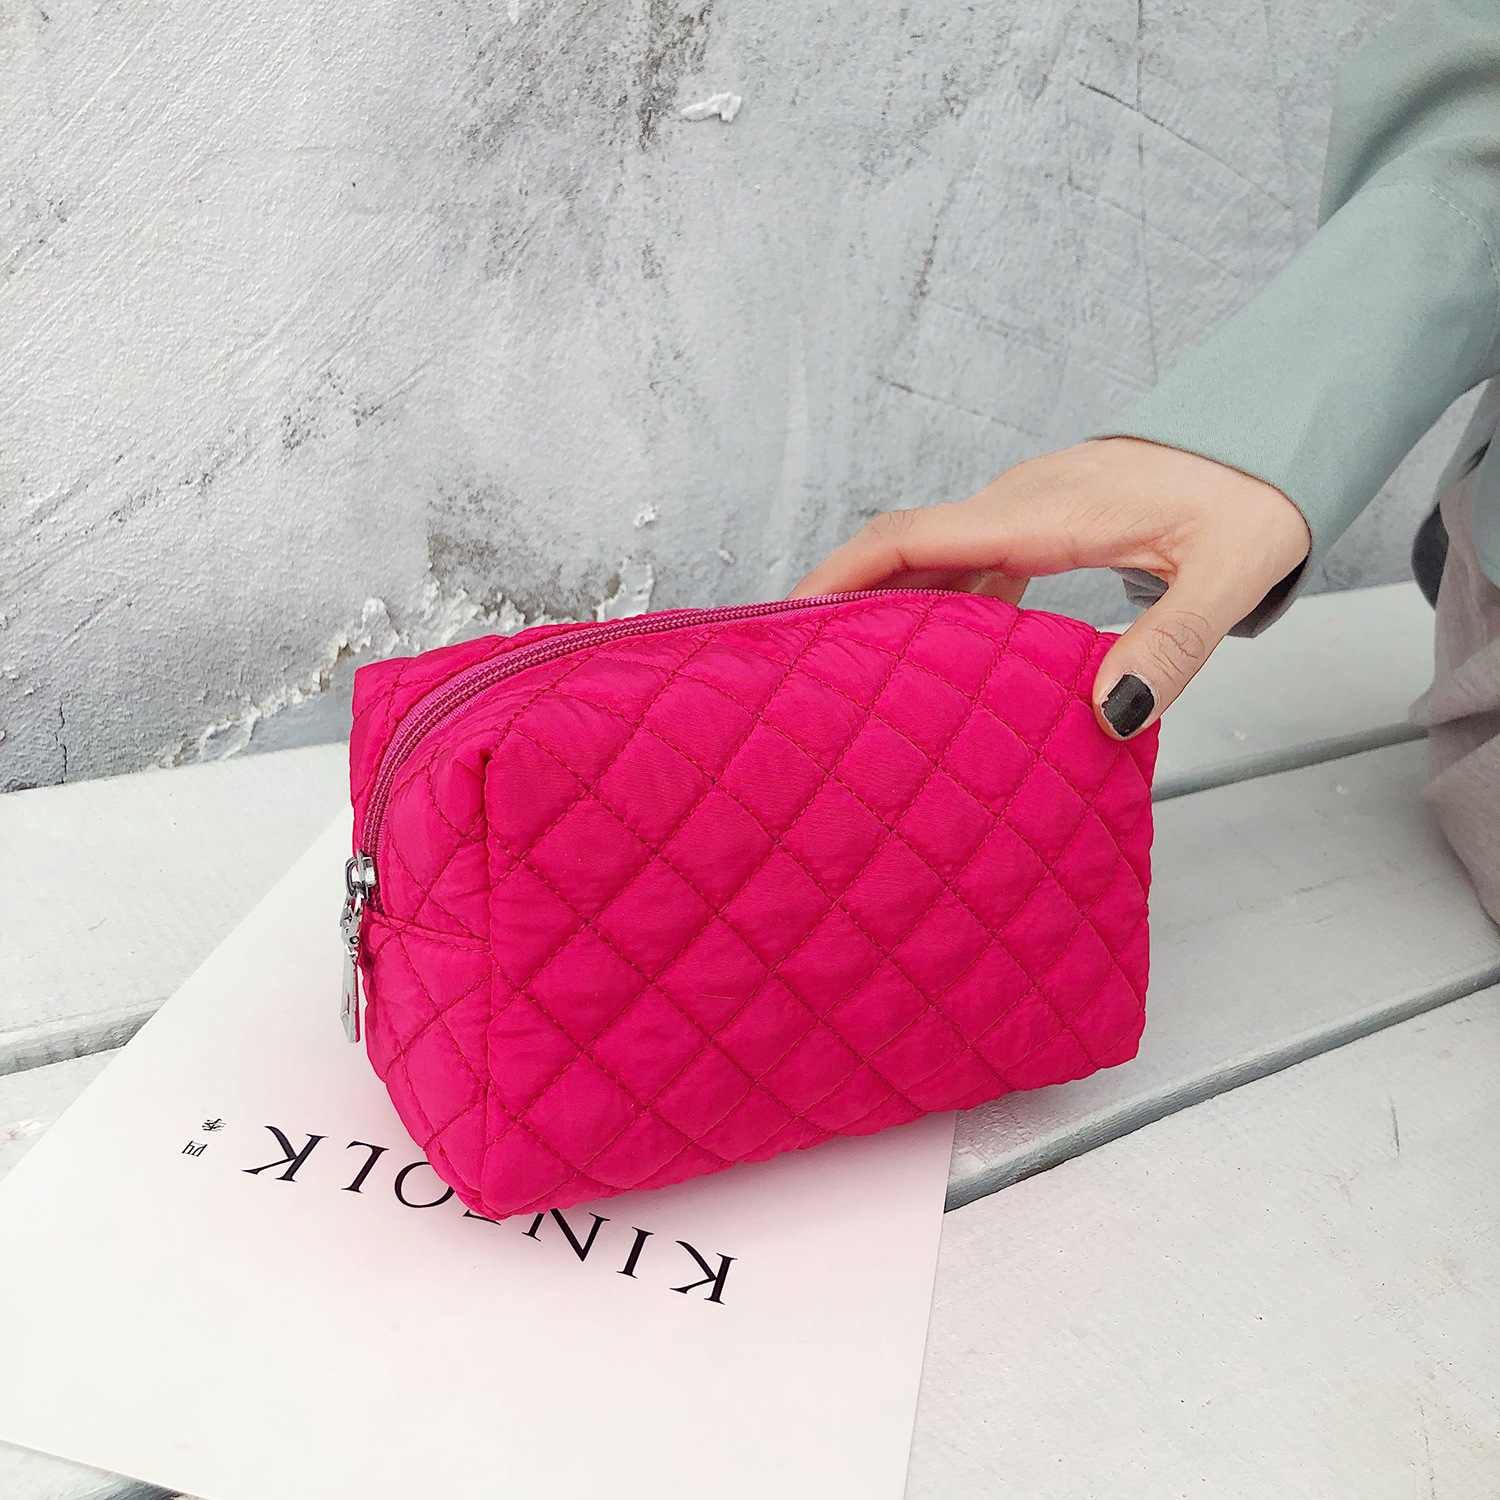 Women Cosmetic Bag Solid Multifunction Travel Make Up Bags Zipper Makeup Case Pouch Pencil Case Red Black